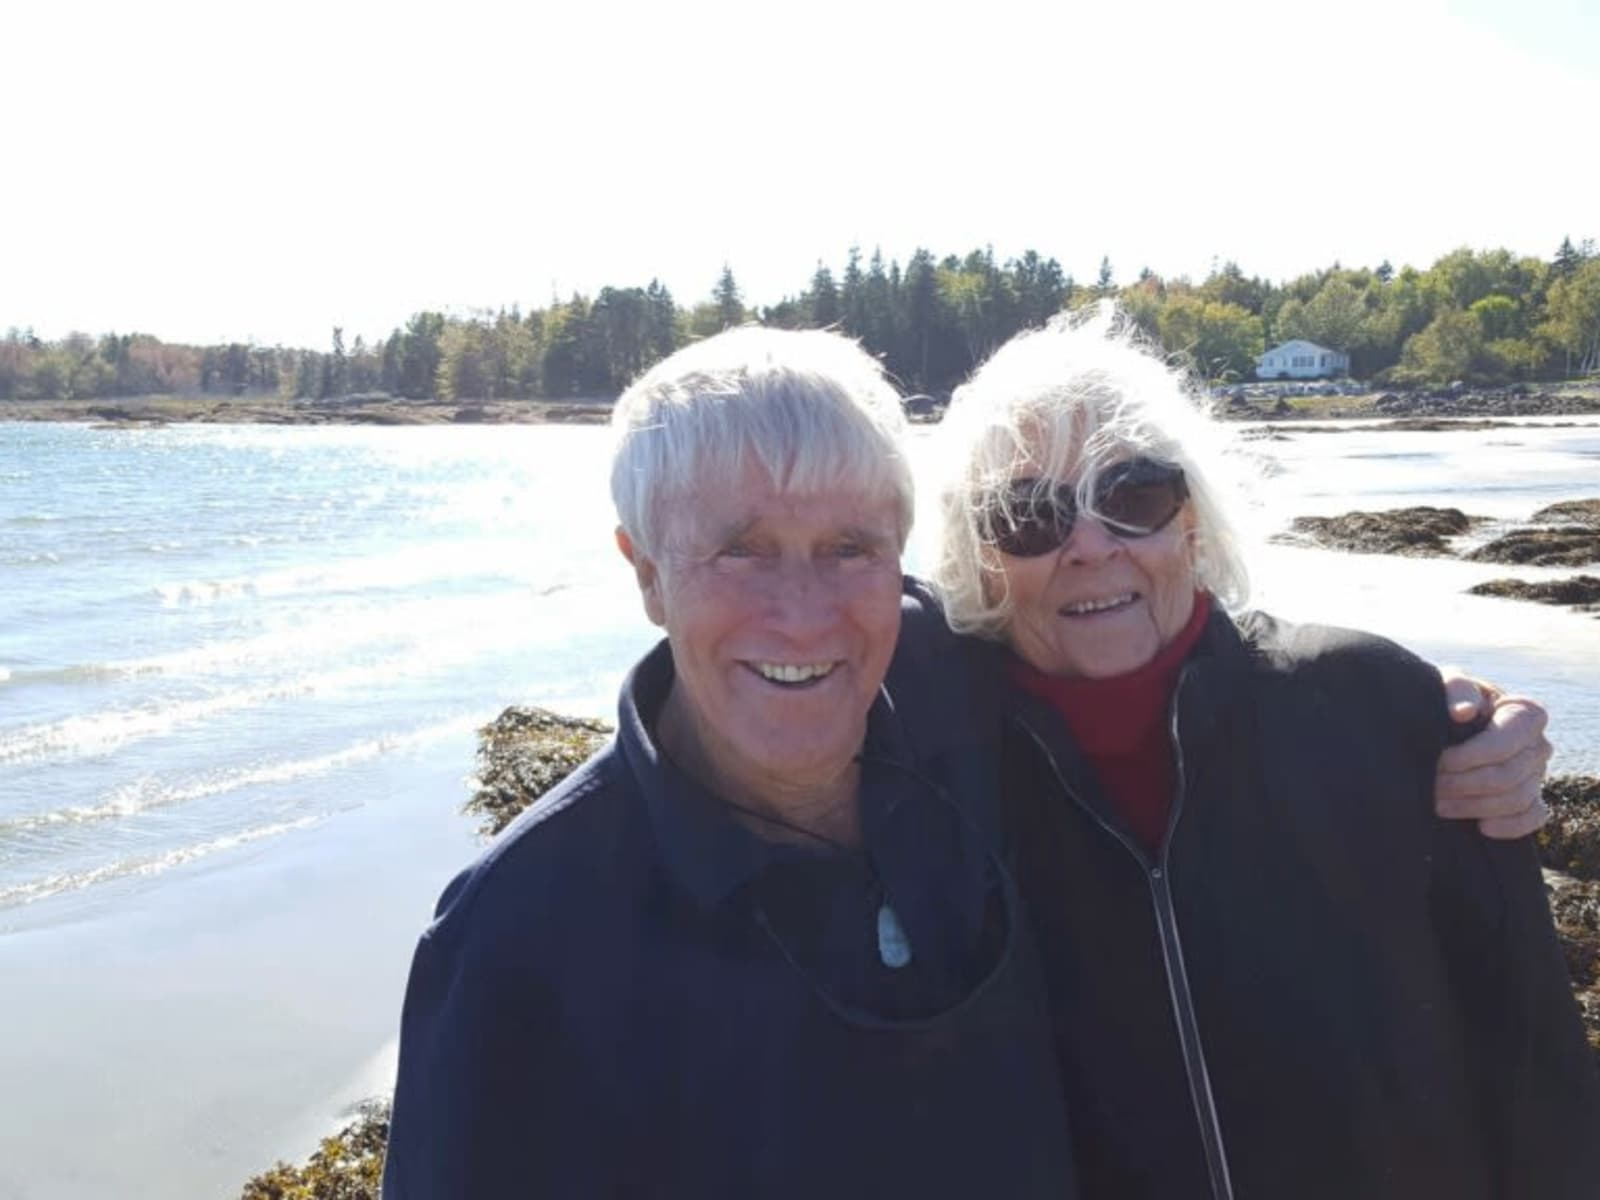 Brian & Elizabeth from Portland, Maine, United States